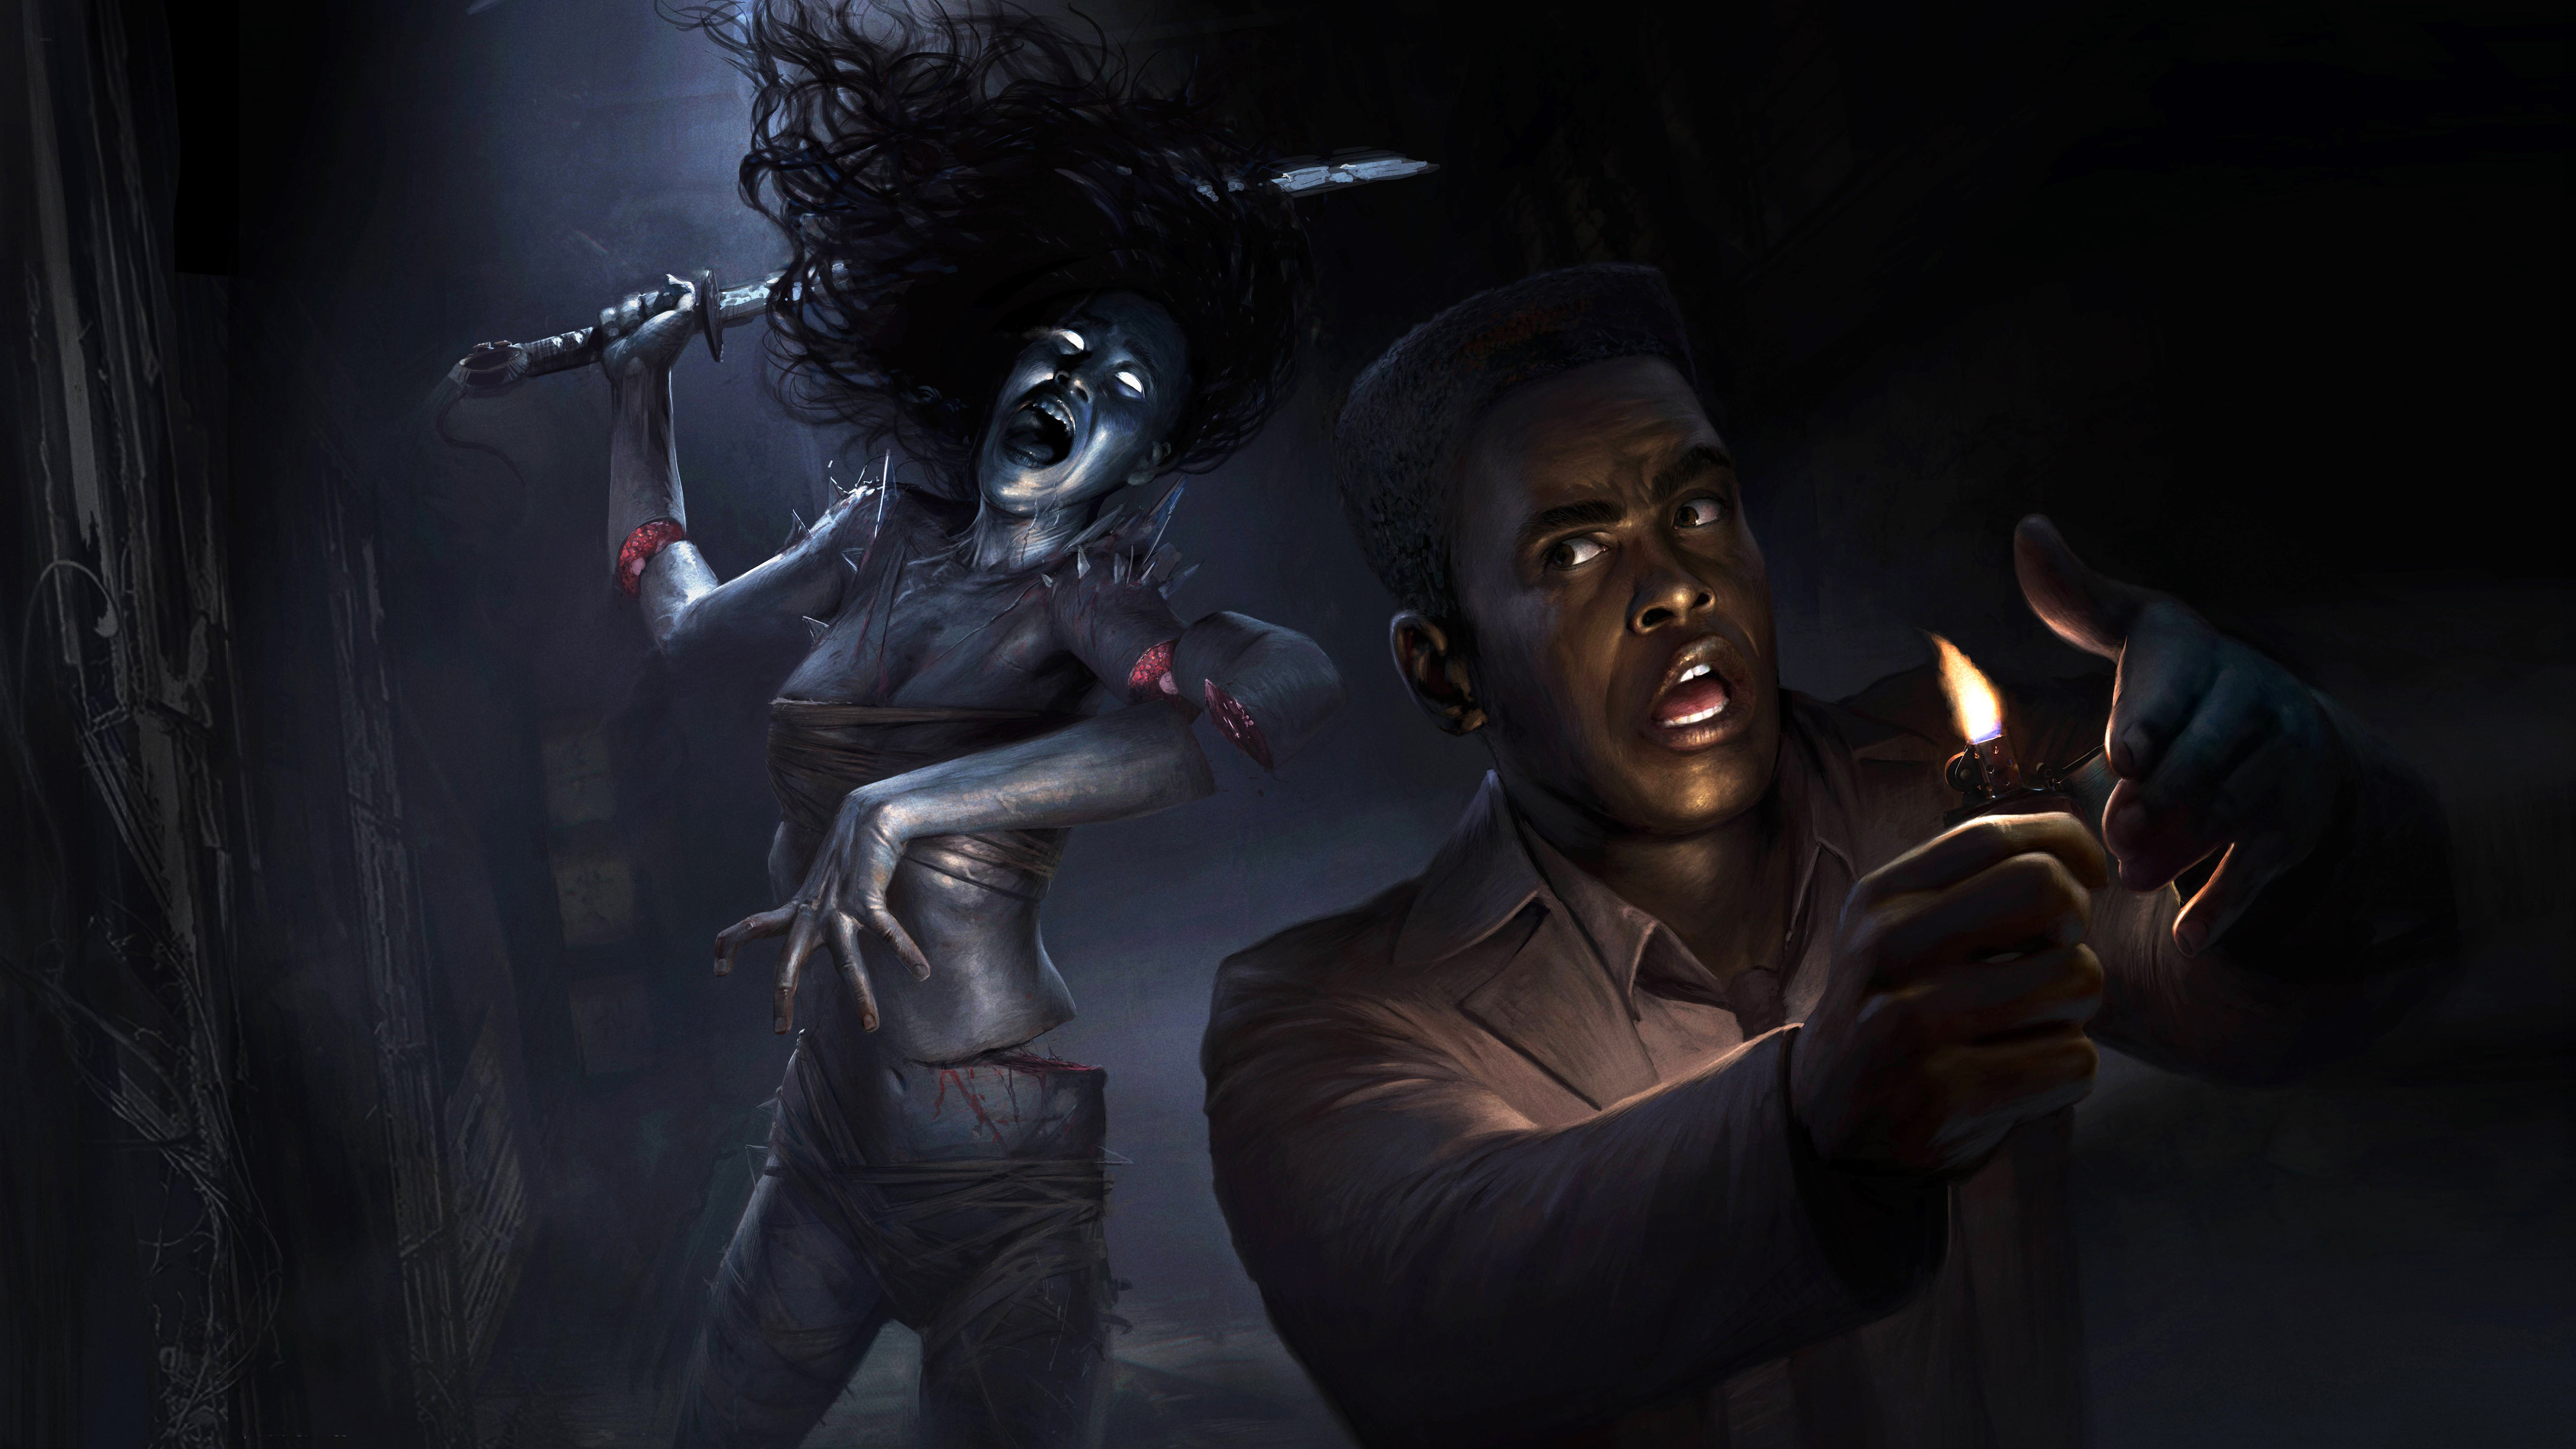 2560x1080 Dead By Daylight Shattered Bloodline 2560x1080 ...